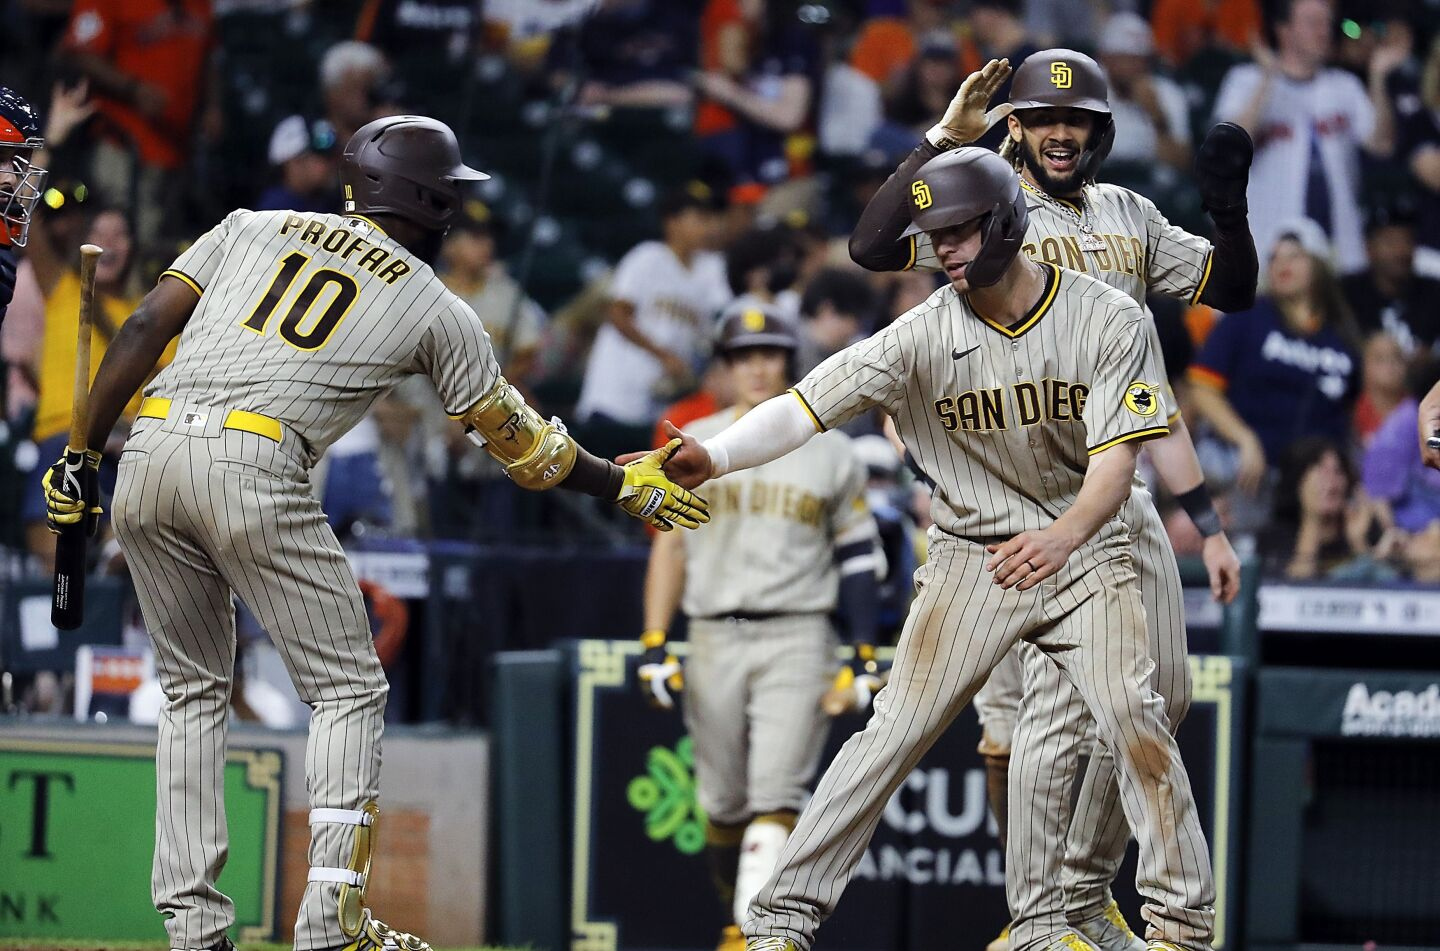 HOUSTON, TEXAS - MAY 29: Wil Myers #5 of the San Diego Padres is congratulated by Jurickson Profar #10 and Fernando Tatis Jr. #23 after hitting a three-run home run in the twelfth inning against the Houston Astros at Minute Maid Park on May 29, 2021 in Houston, Texas. (Photo by Bob Levey/Getty Images)